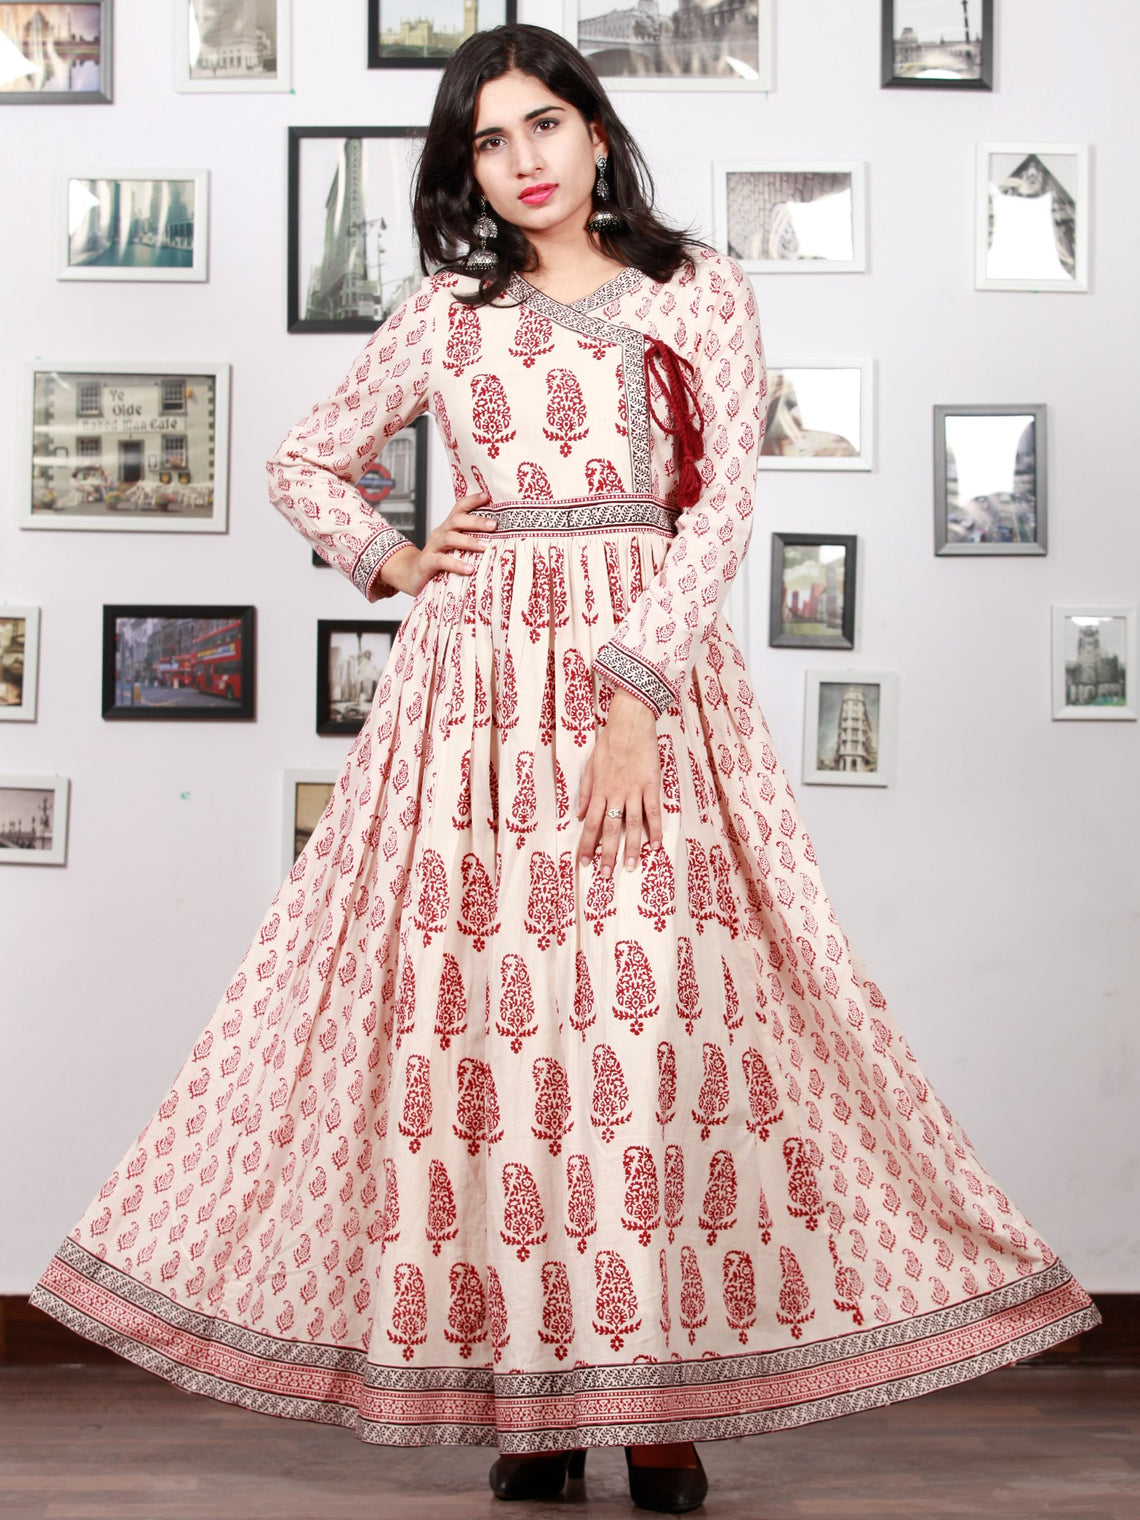 6bc431739 White Red Black Bagh Printed Cotton Long Angrakha Dress With Gathers -  D298F1719 ...